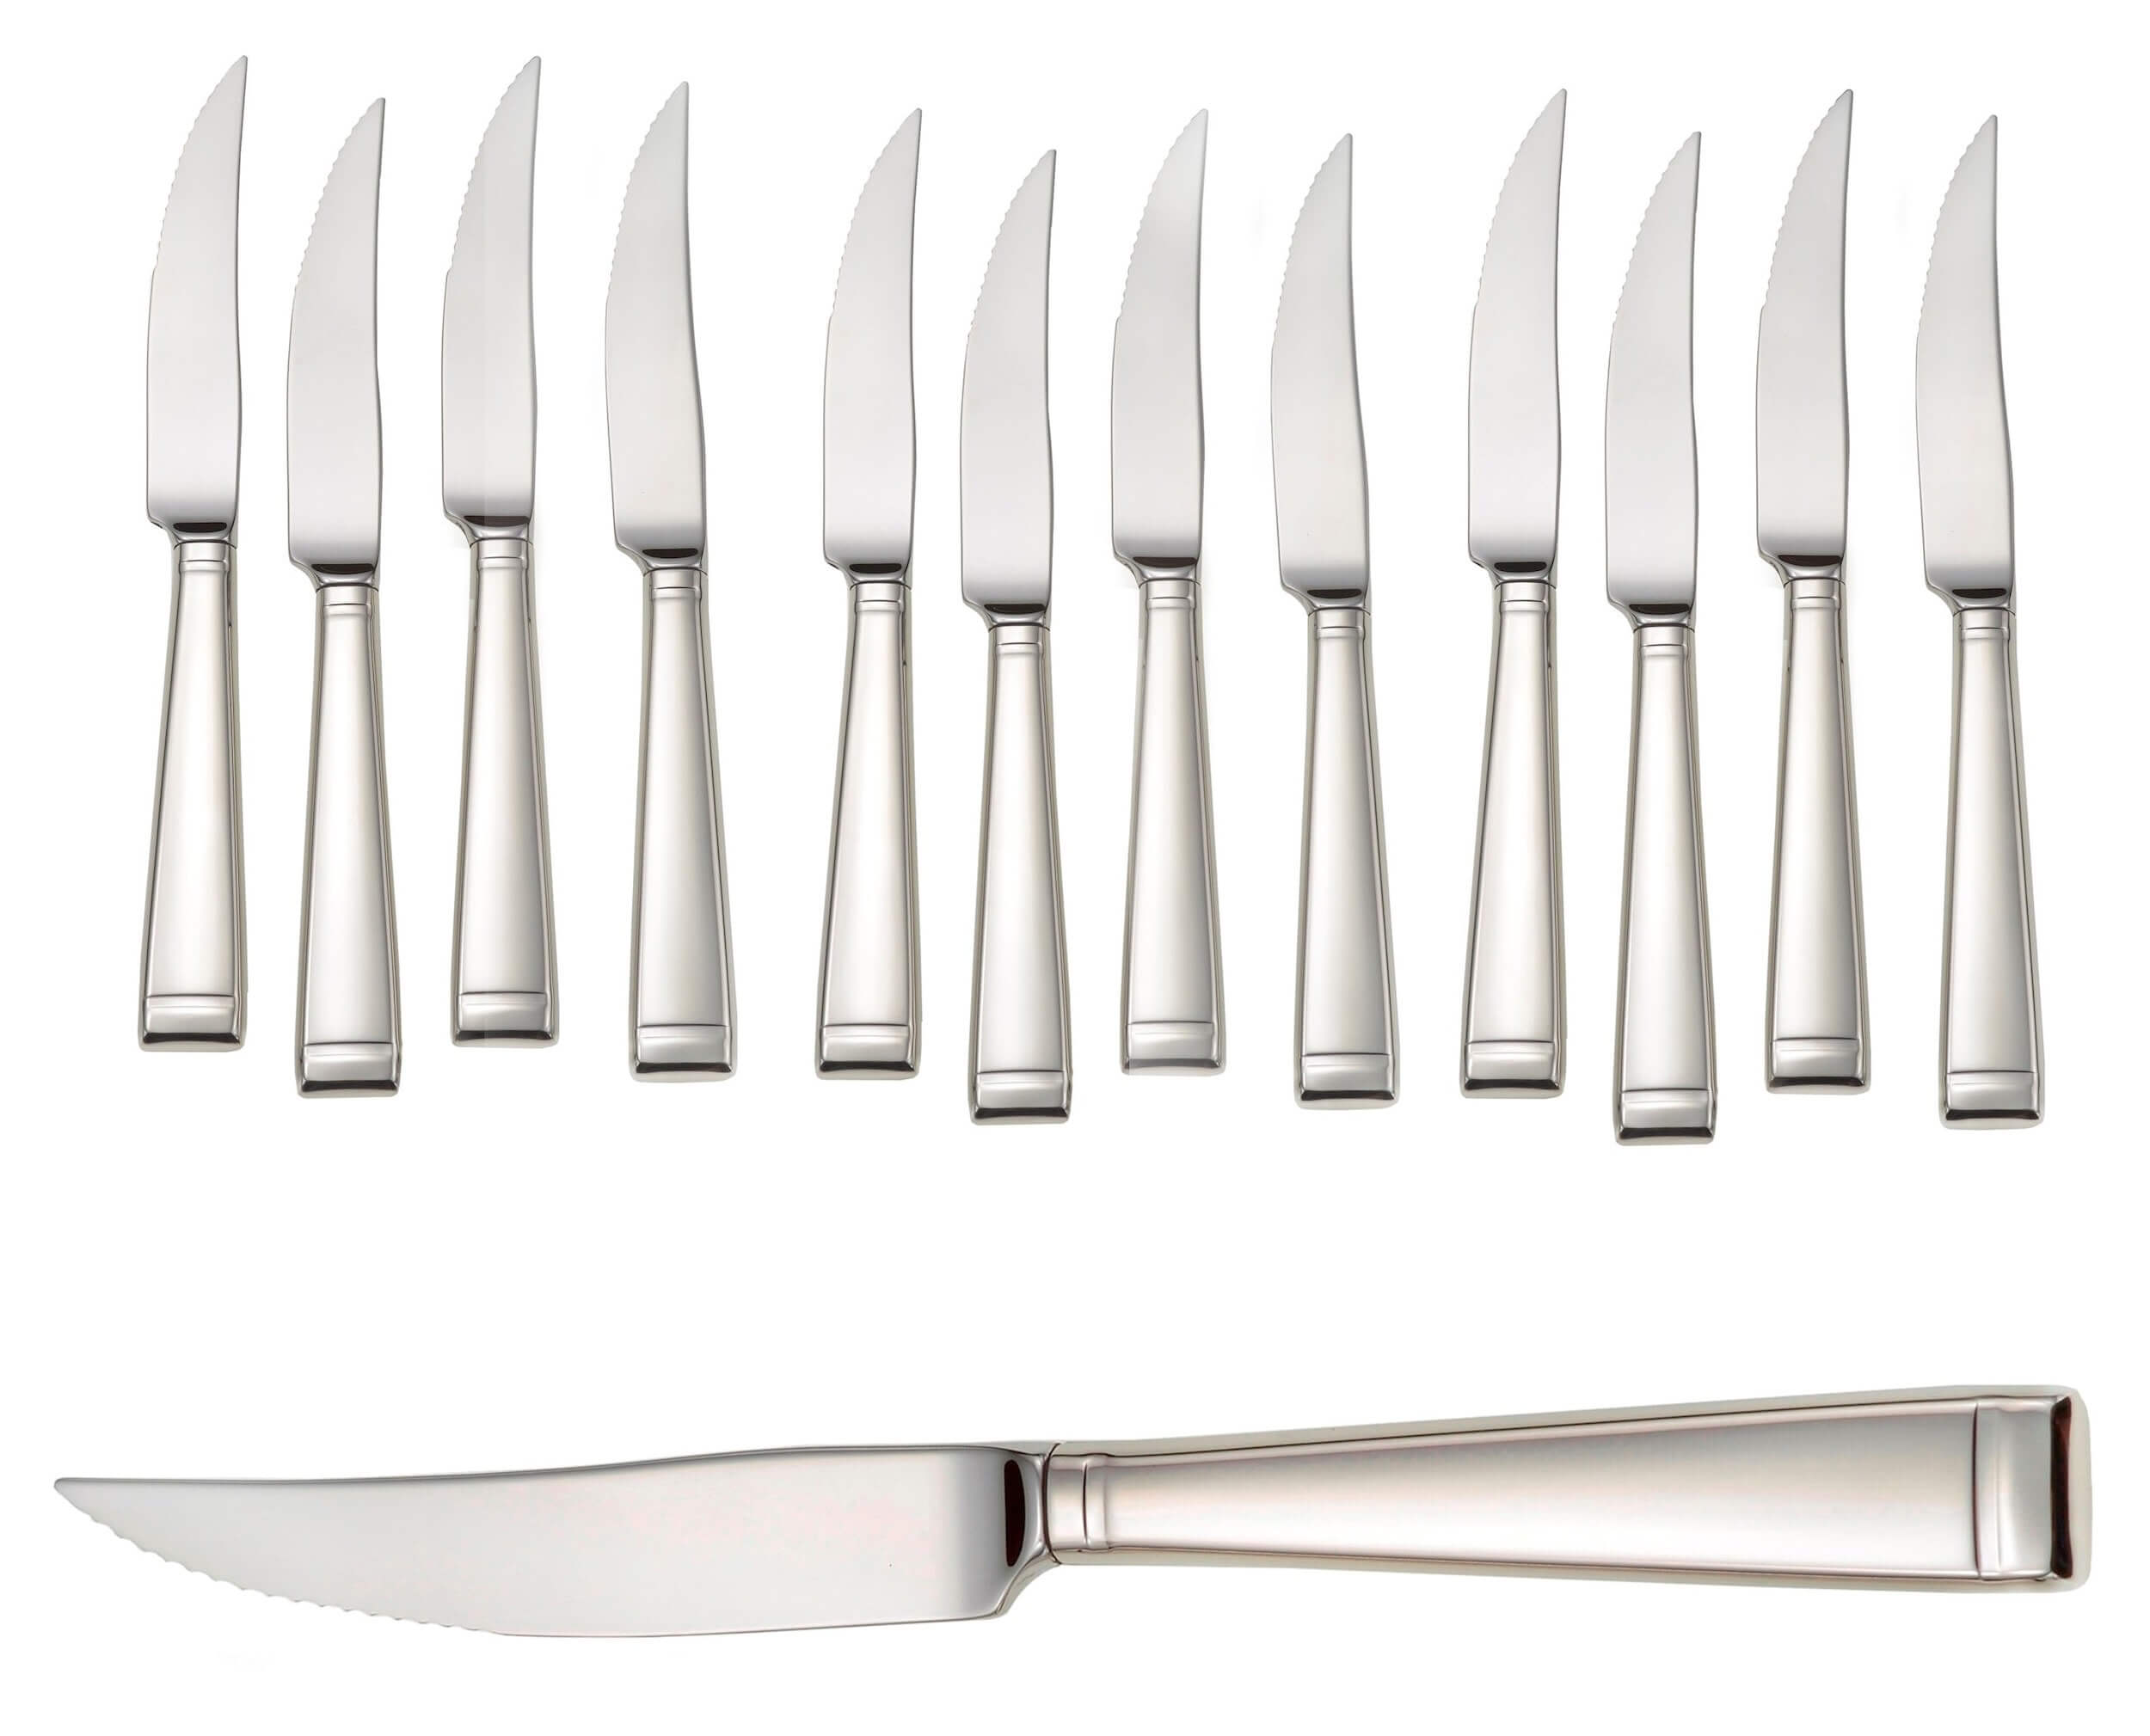 steak knives promotional set of 12 with closeup